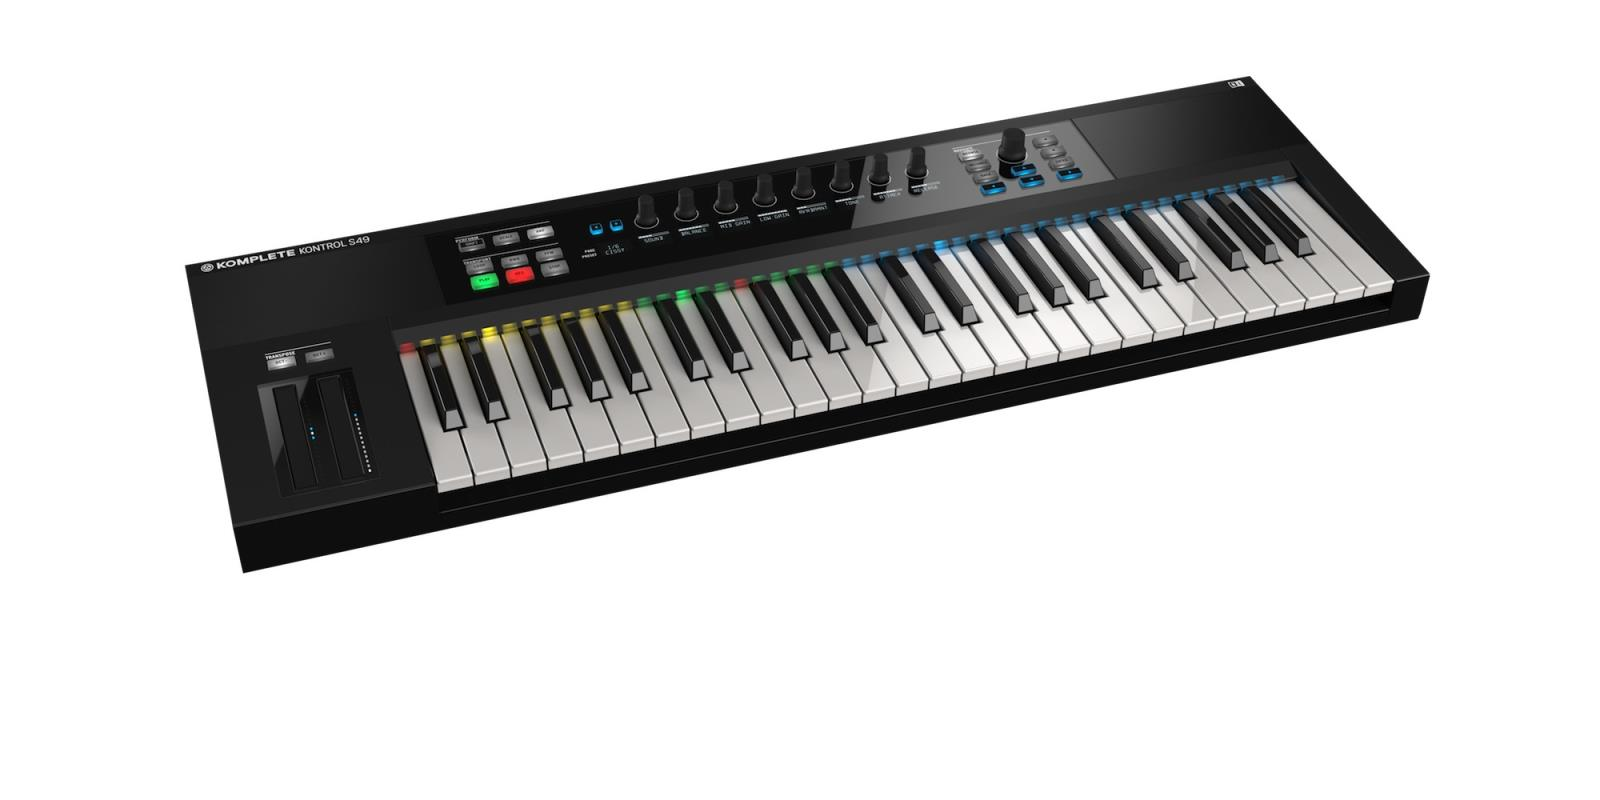 komplete kontrol s49 native instruments komplete kontrol. Black Bedroom Furniture Sets. Home Design Ideas